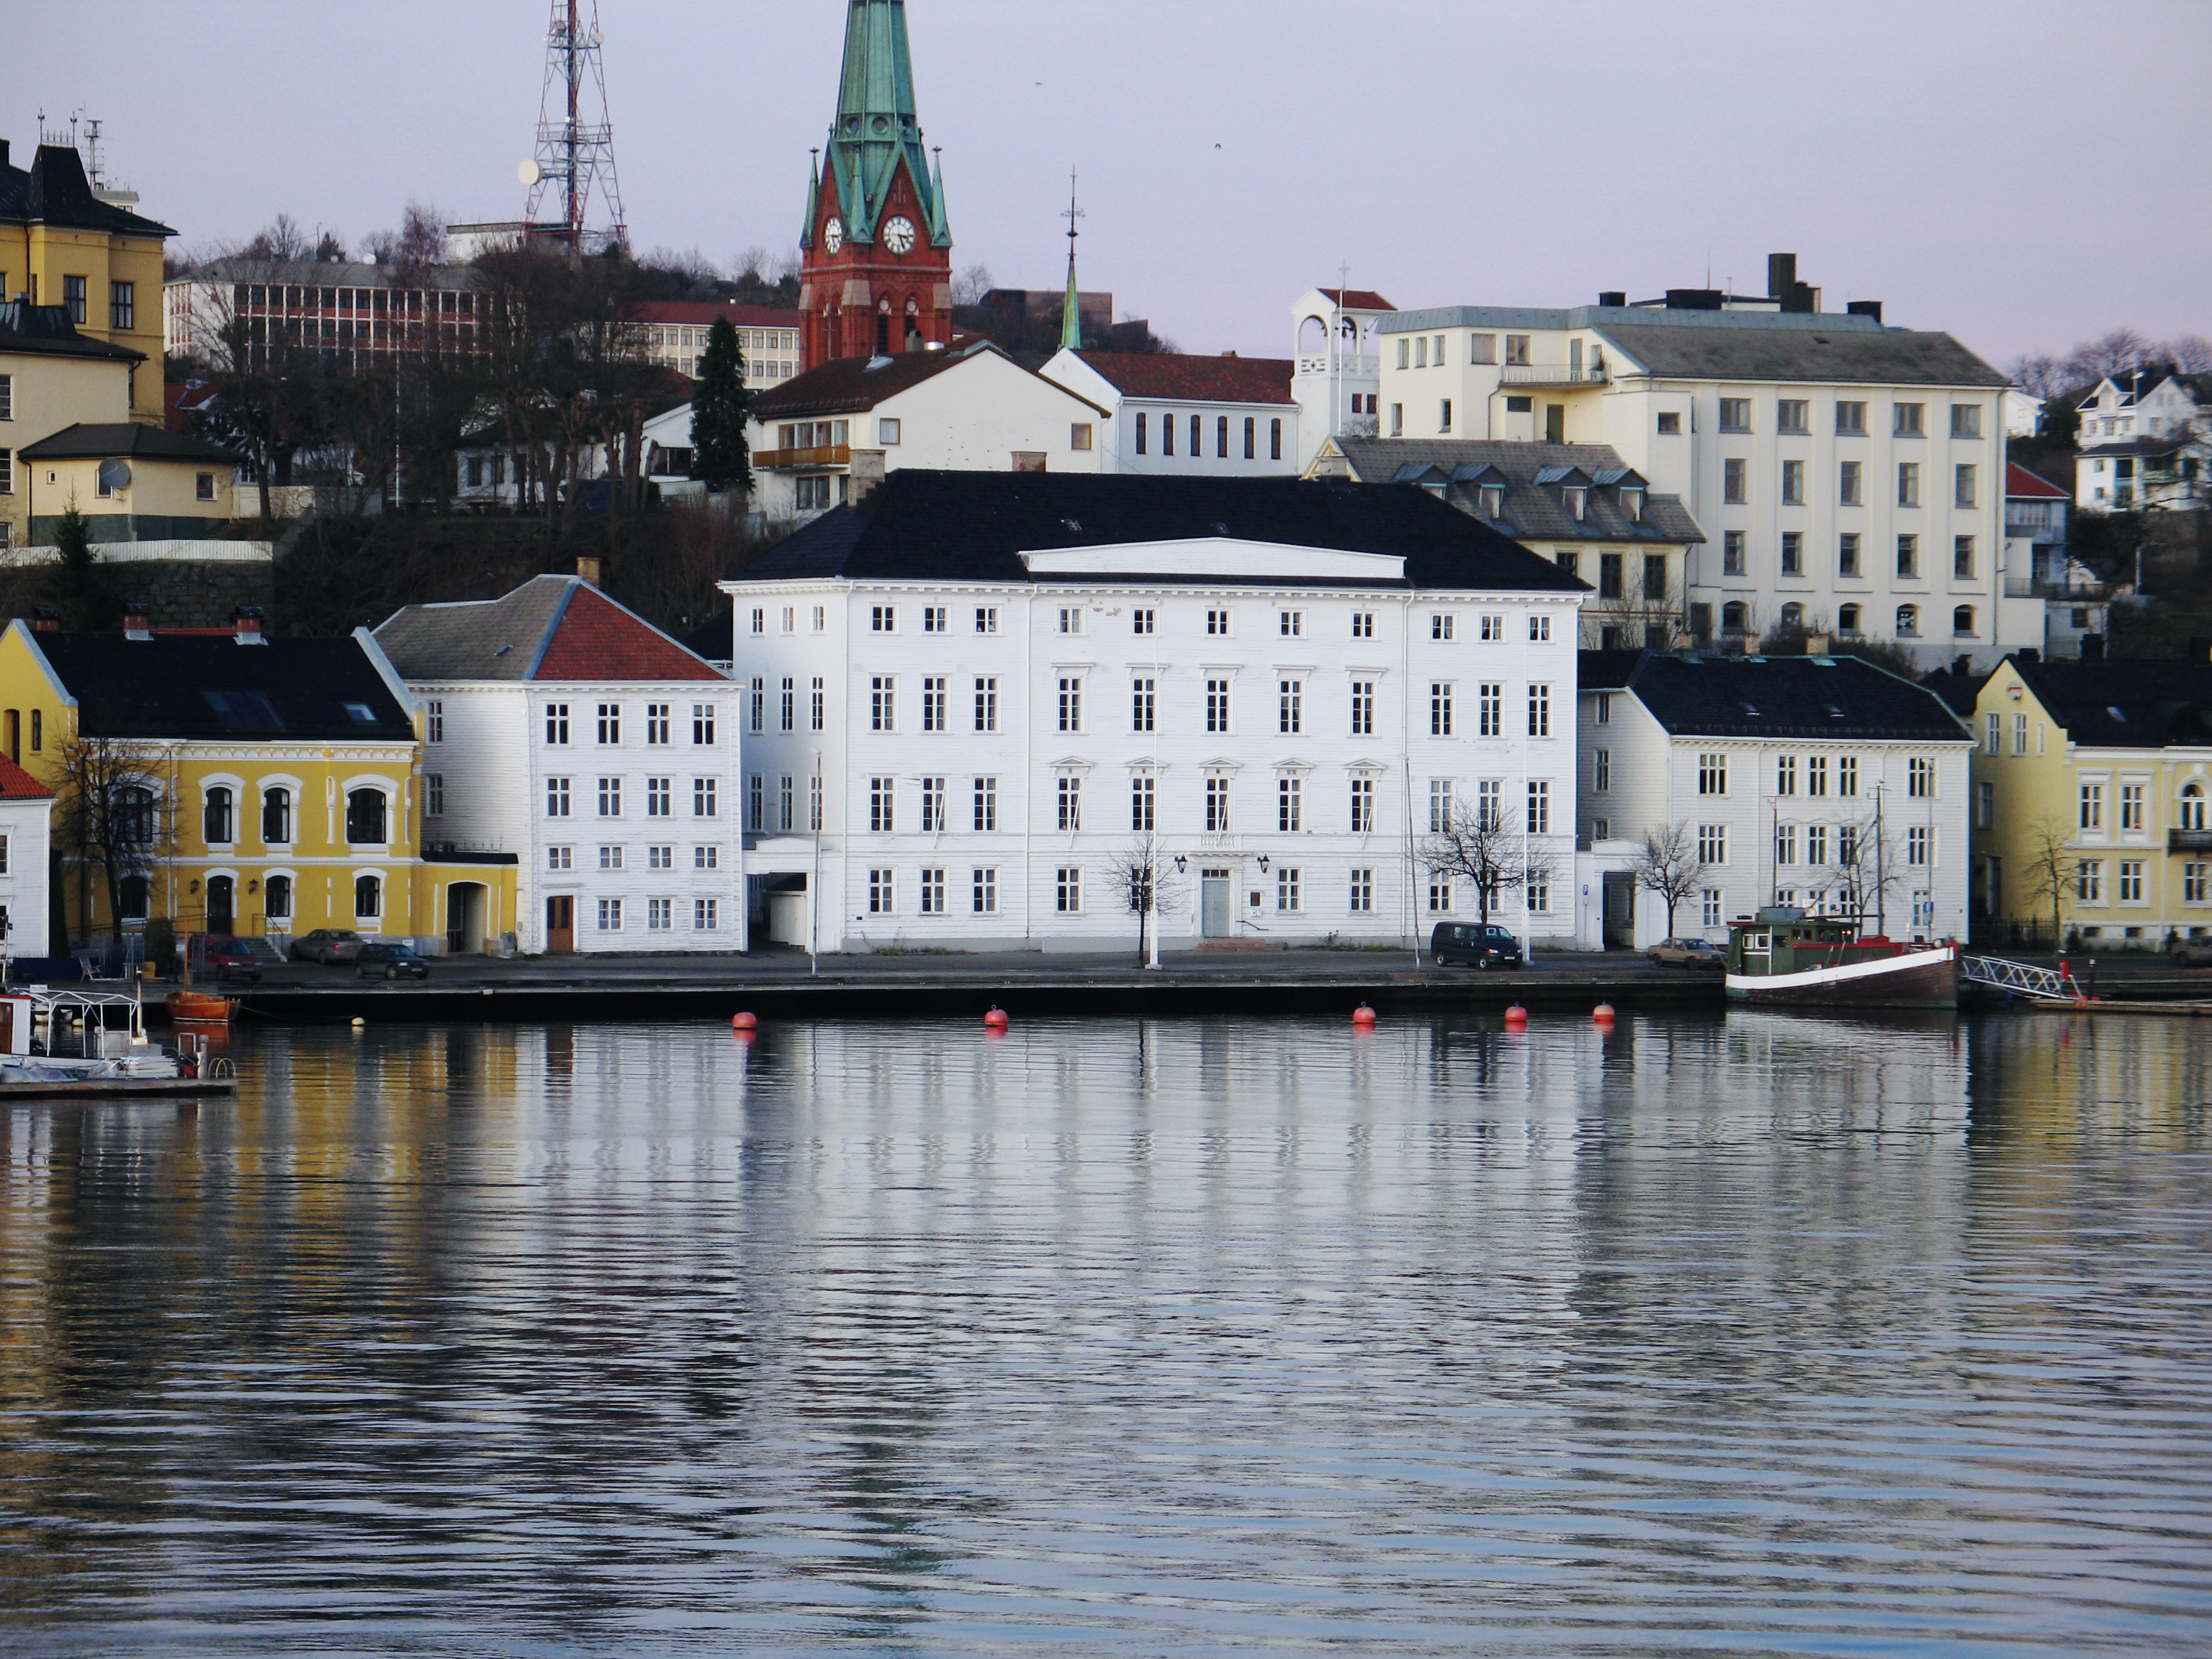 c date norge Arendal